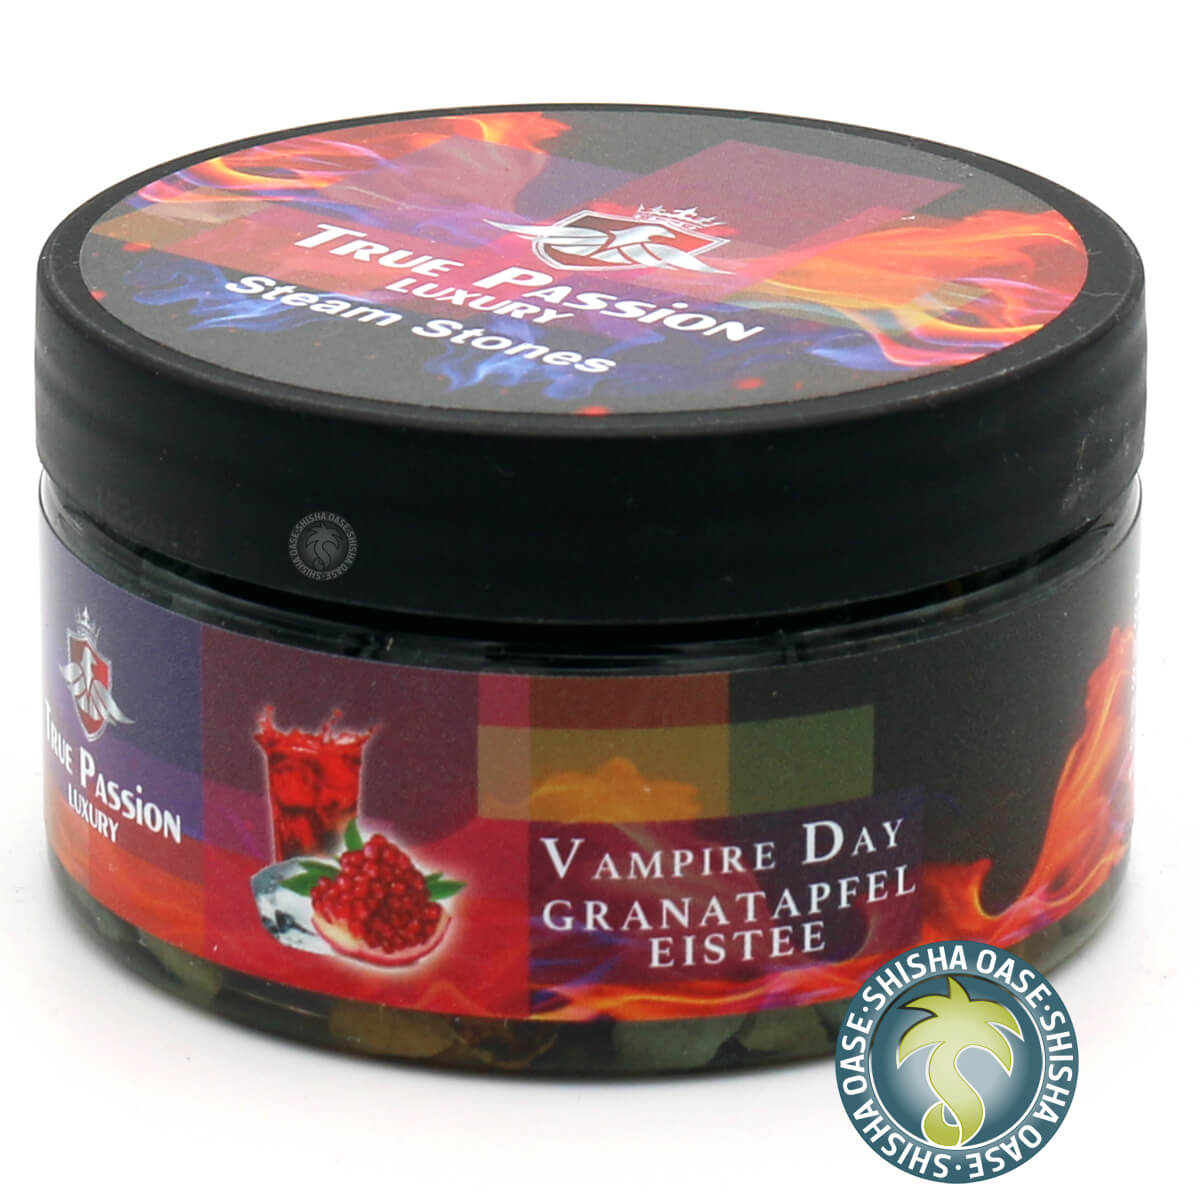 True Passion Dampfsteine 120g | Vampire Day's